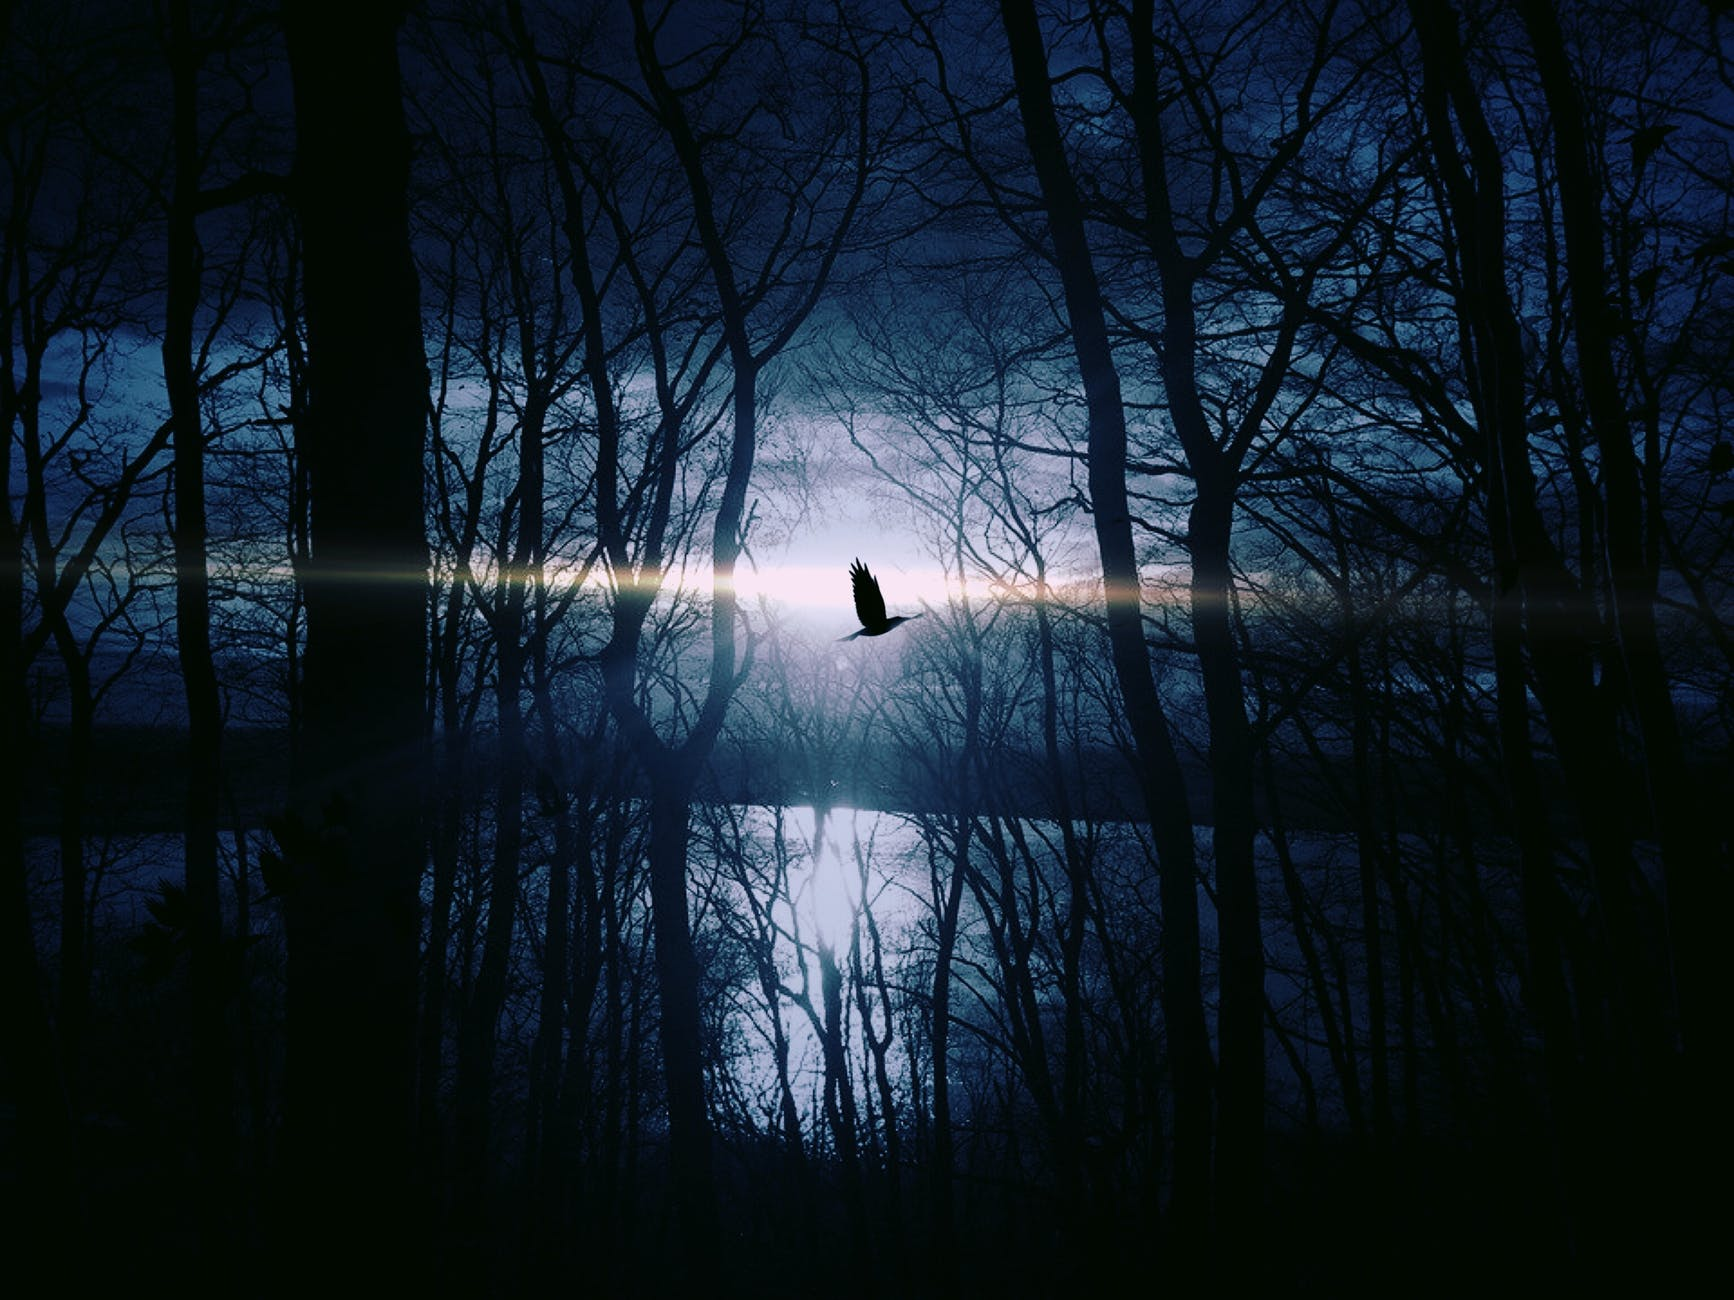 black bird flying over body of water